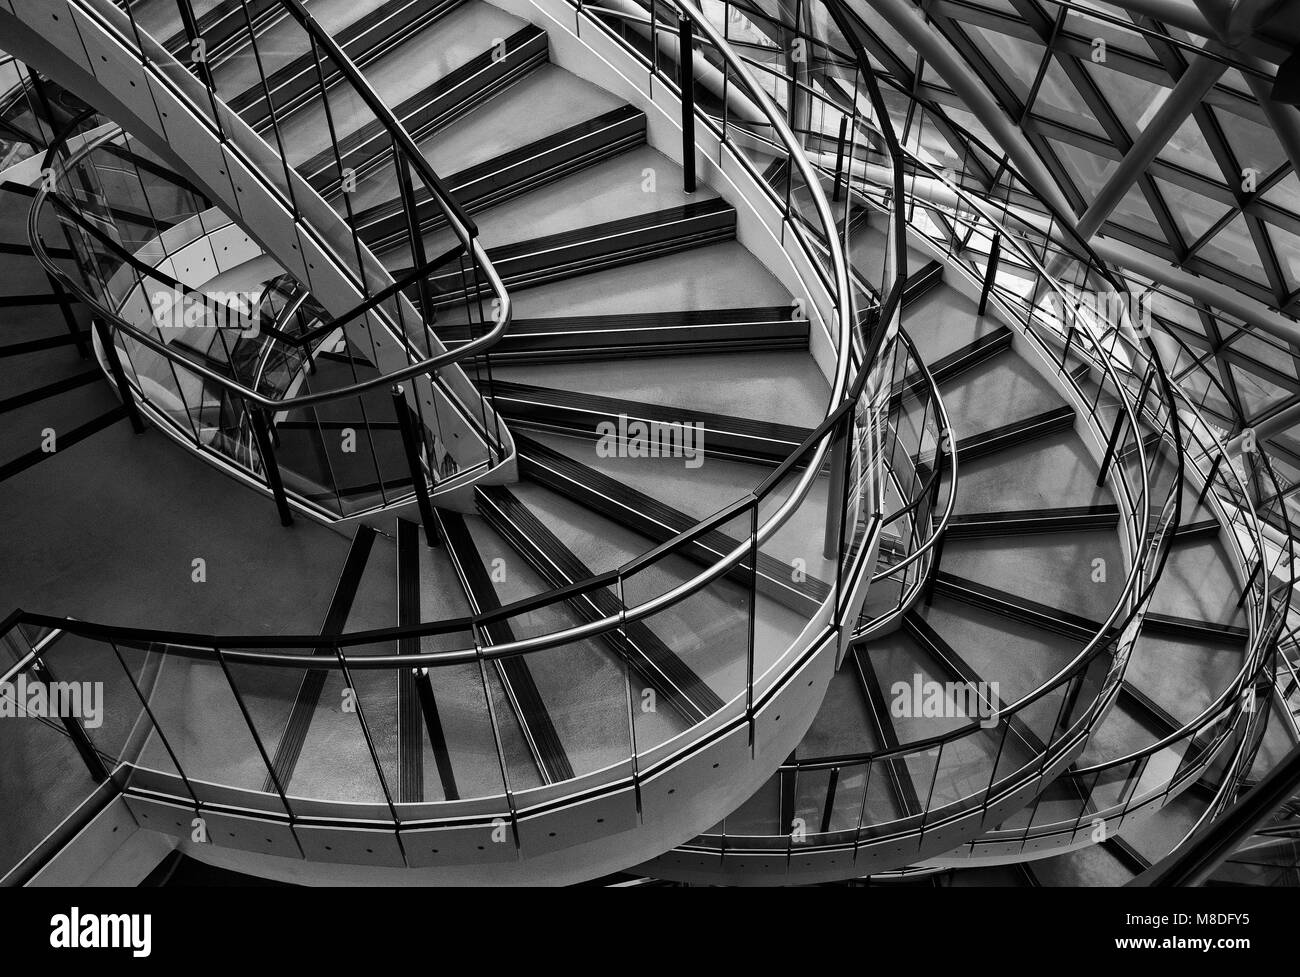 City Hall Stairs, London, Interior - Stock Image